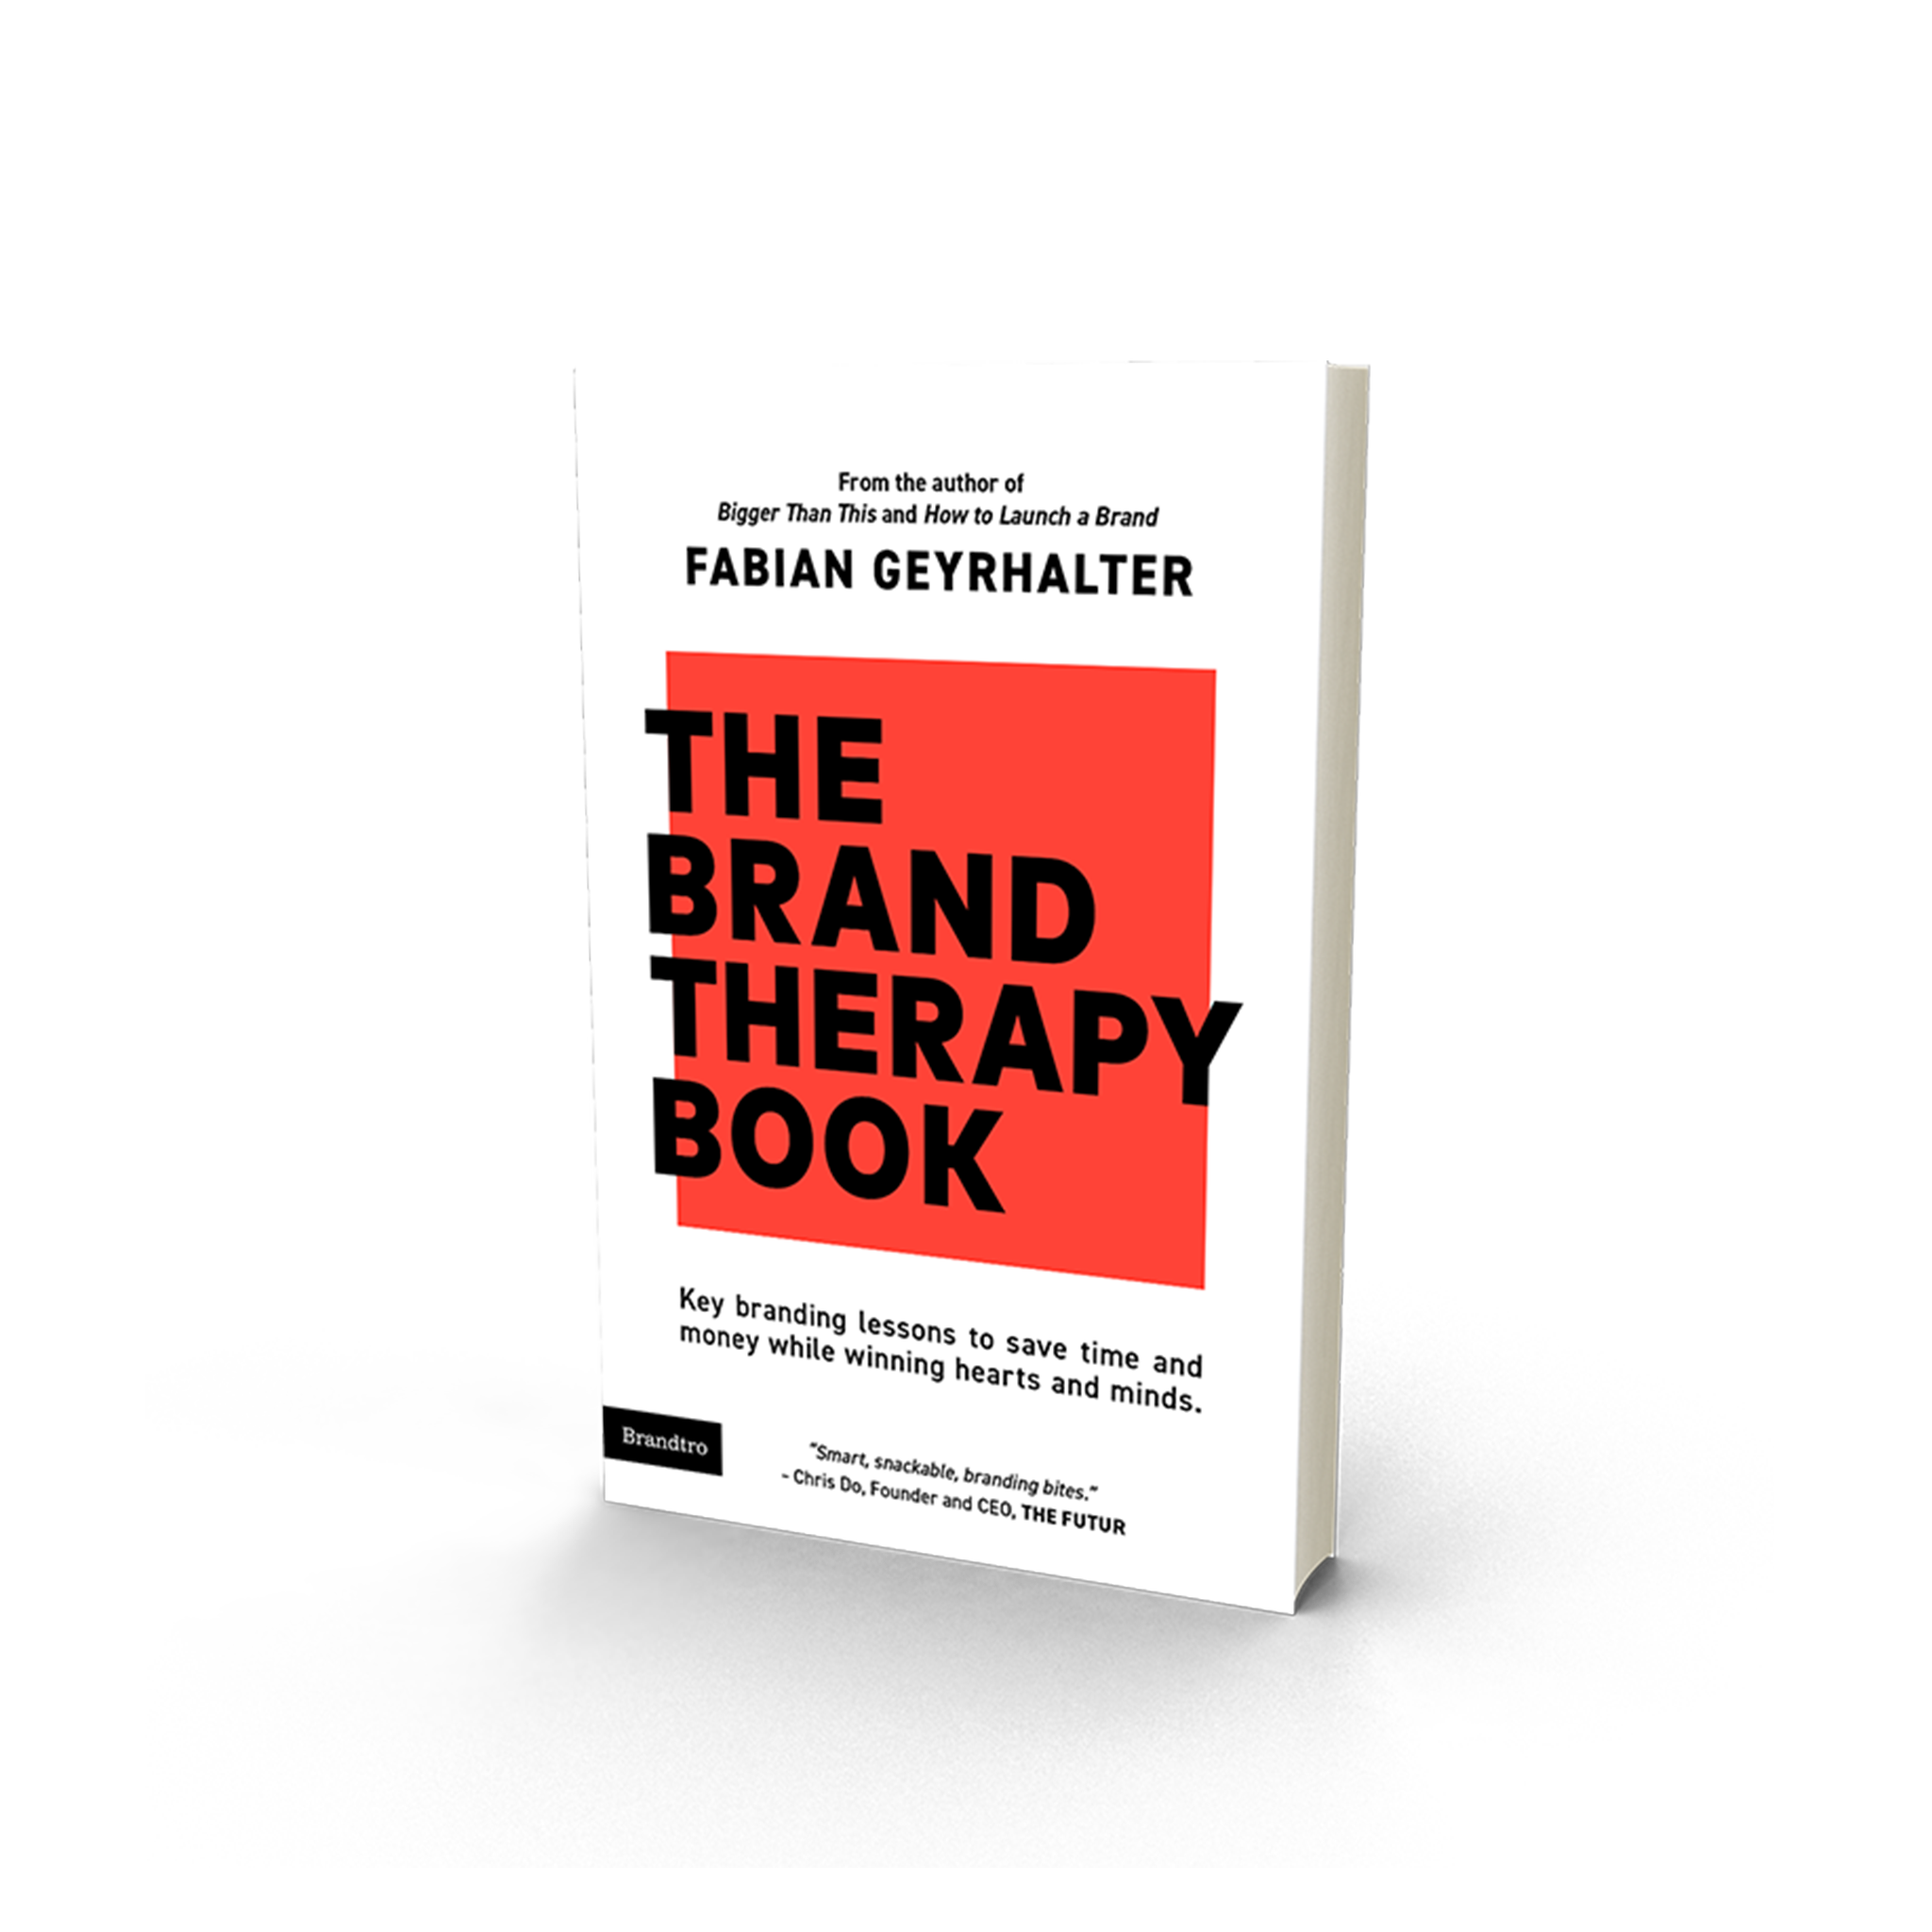 Book cover of the brand therapy book